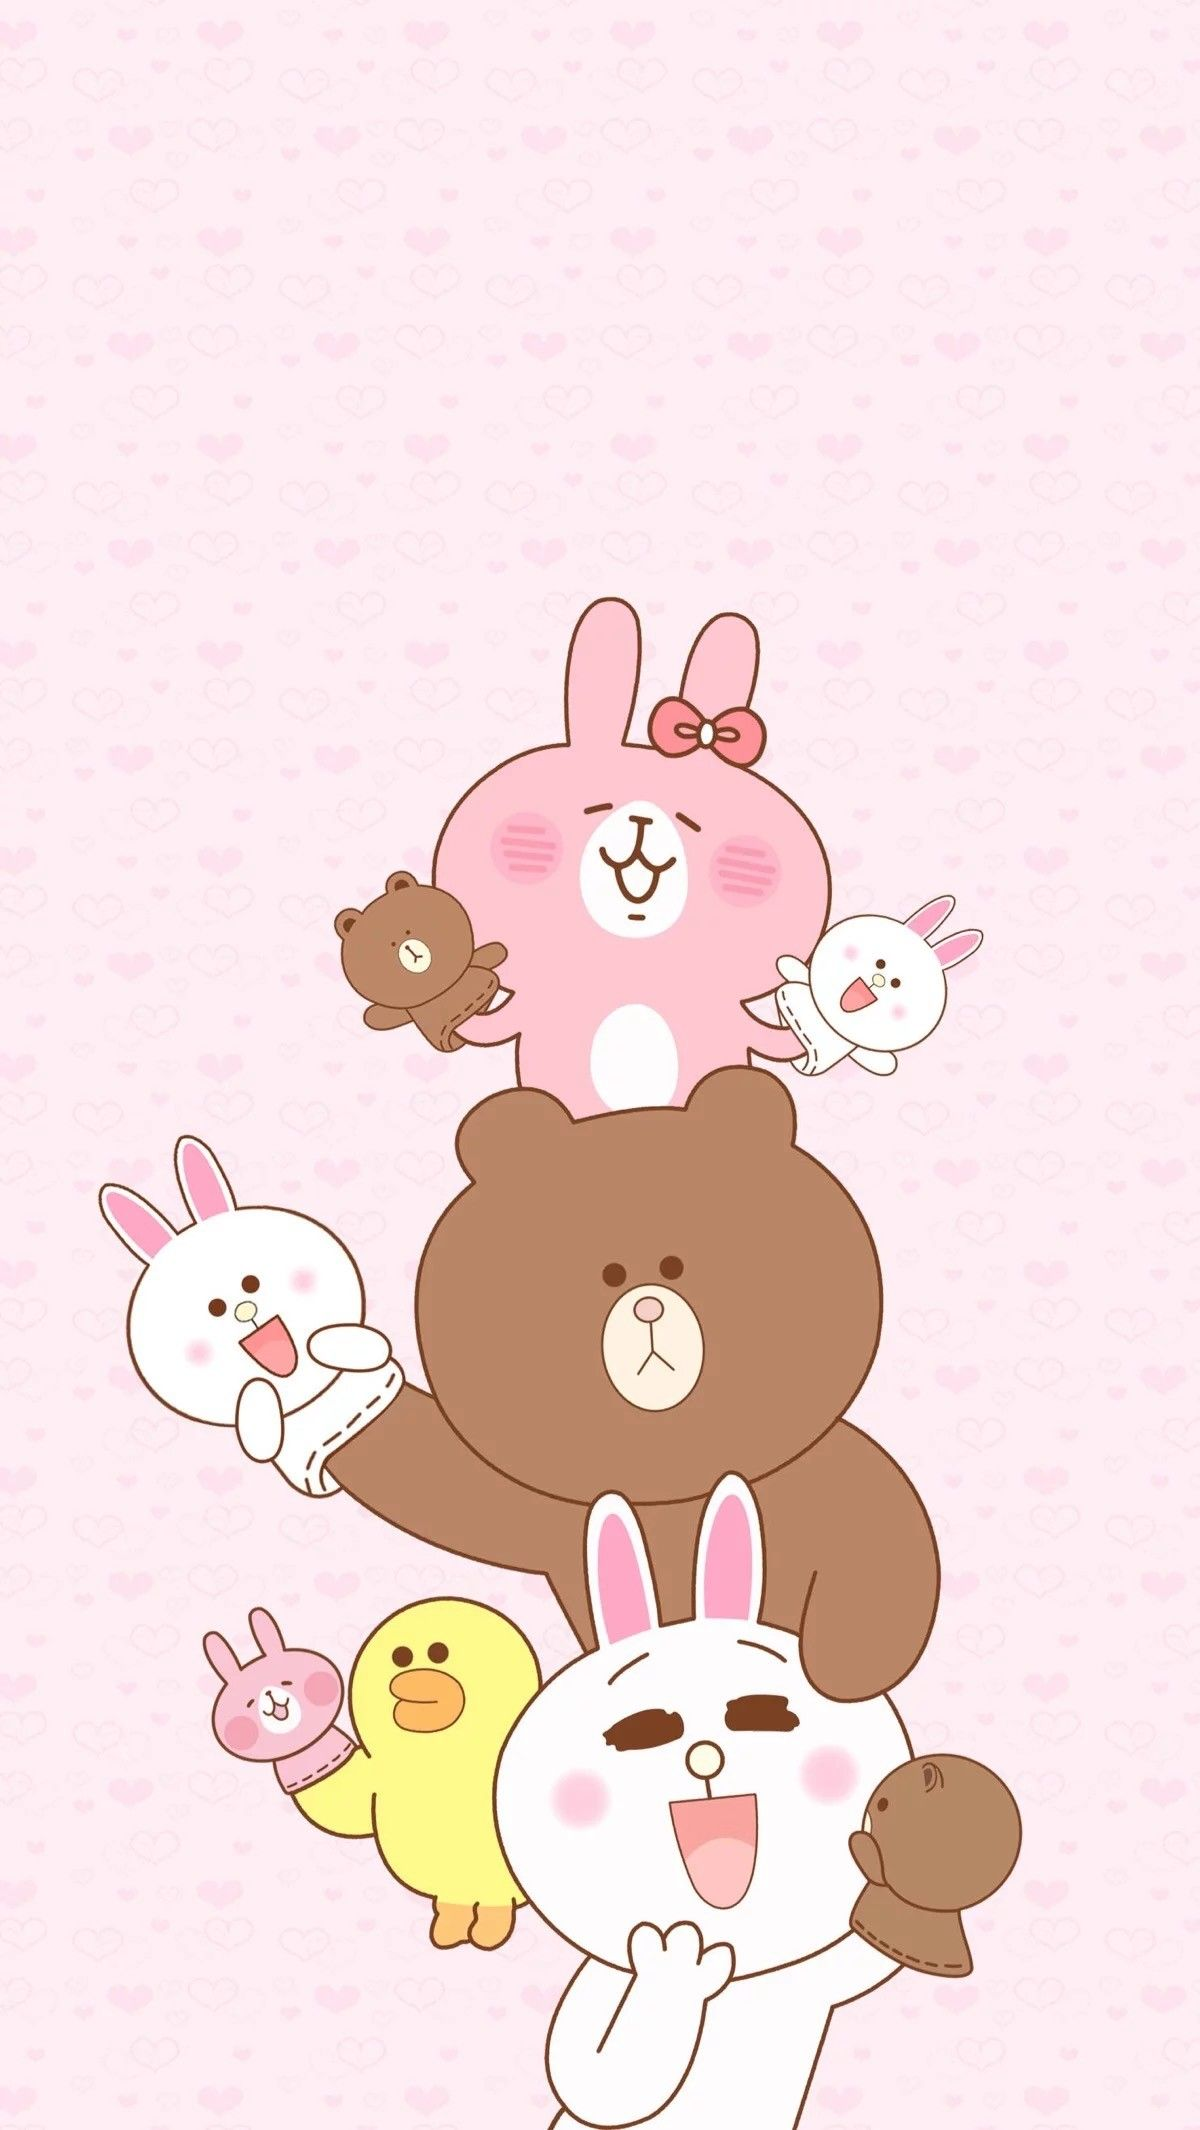 Sanrio Iphone Wallpapers Top Free Sanrio Iphone Backgrounds